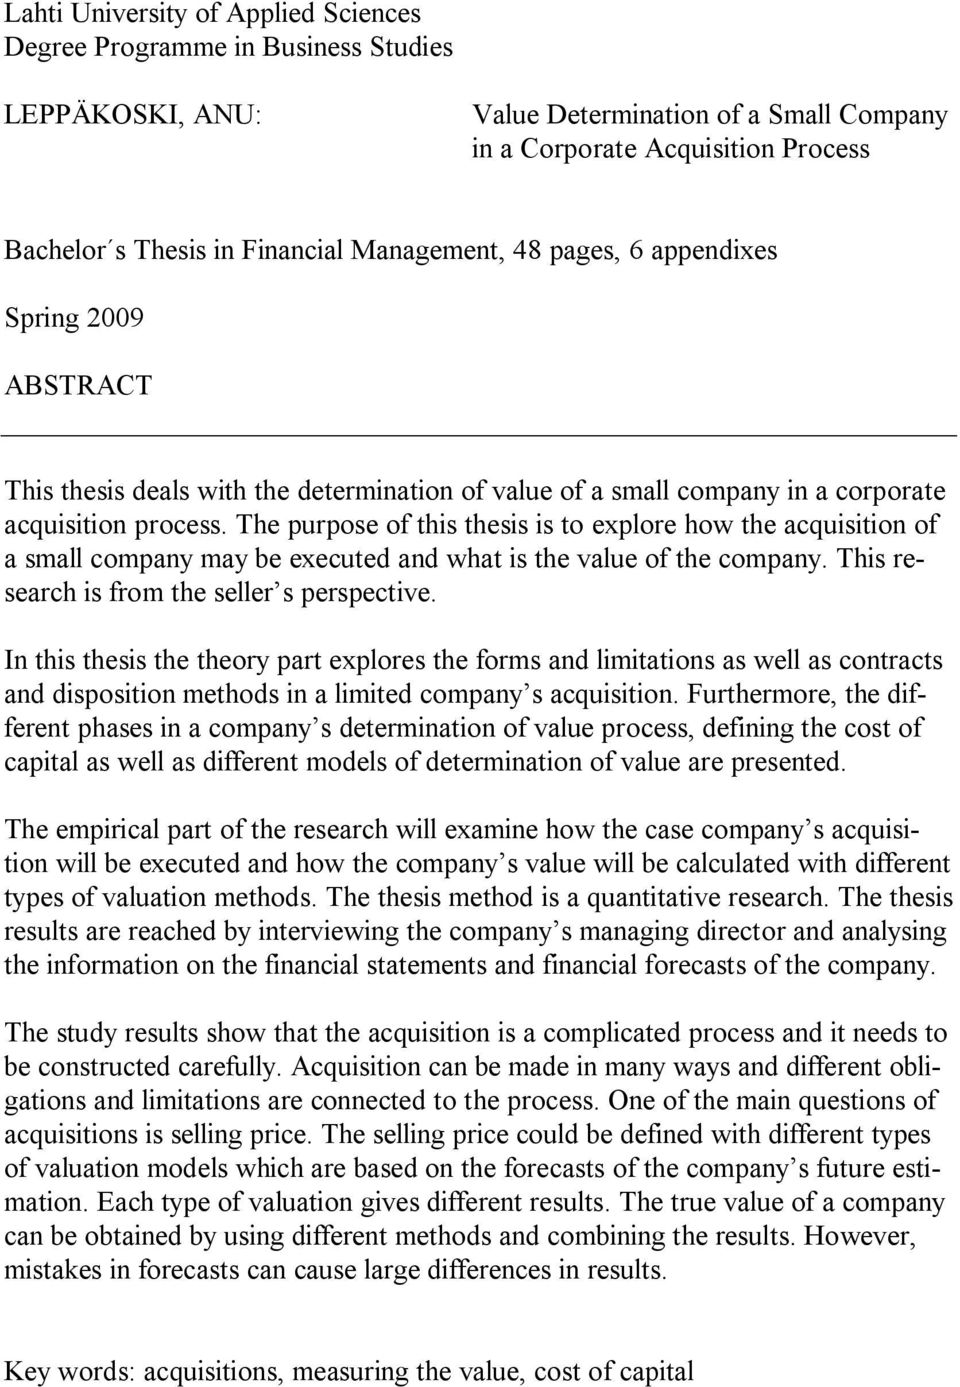 The purpose of this thesis is to explore how the acquisition of a small company may be executed and what is the value of the company. This research is from the seller s perspective.